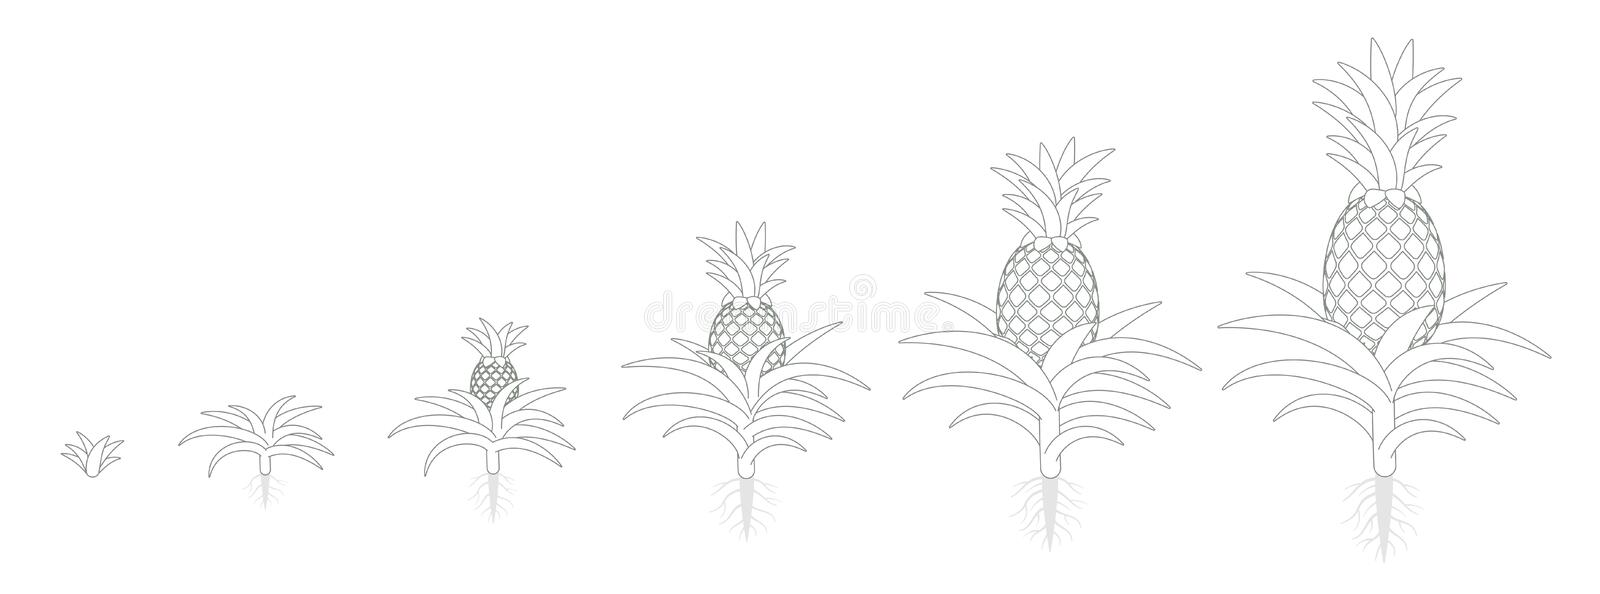 The Growth Cycle of pineapple. Tropical plant with an edible fruit. Ananas phases set. Ananas comosus ripening period. The life. The Growth Cycle of pineapple vector illustration